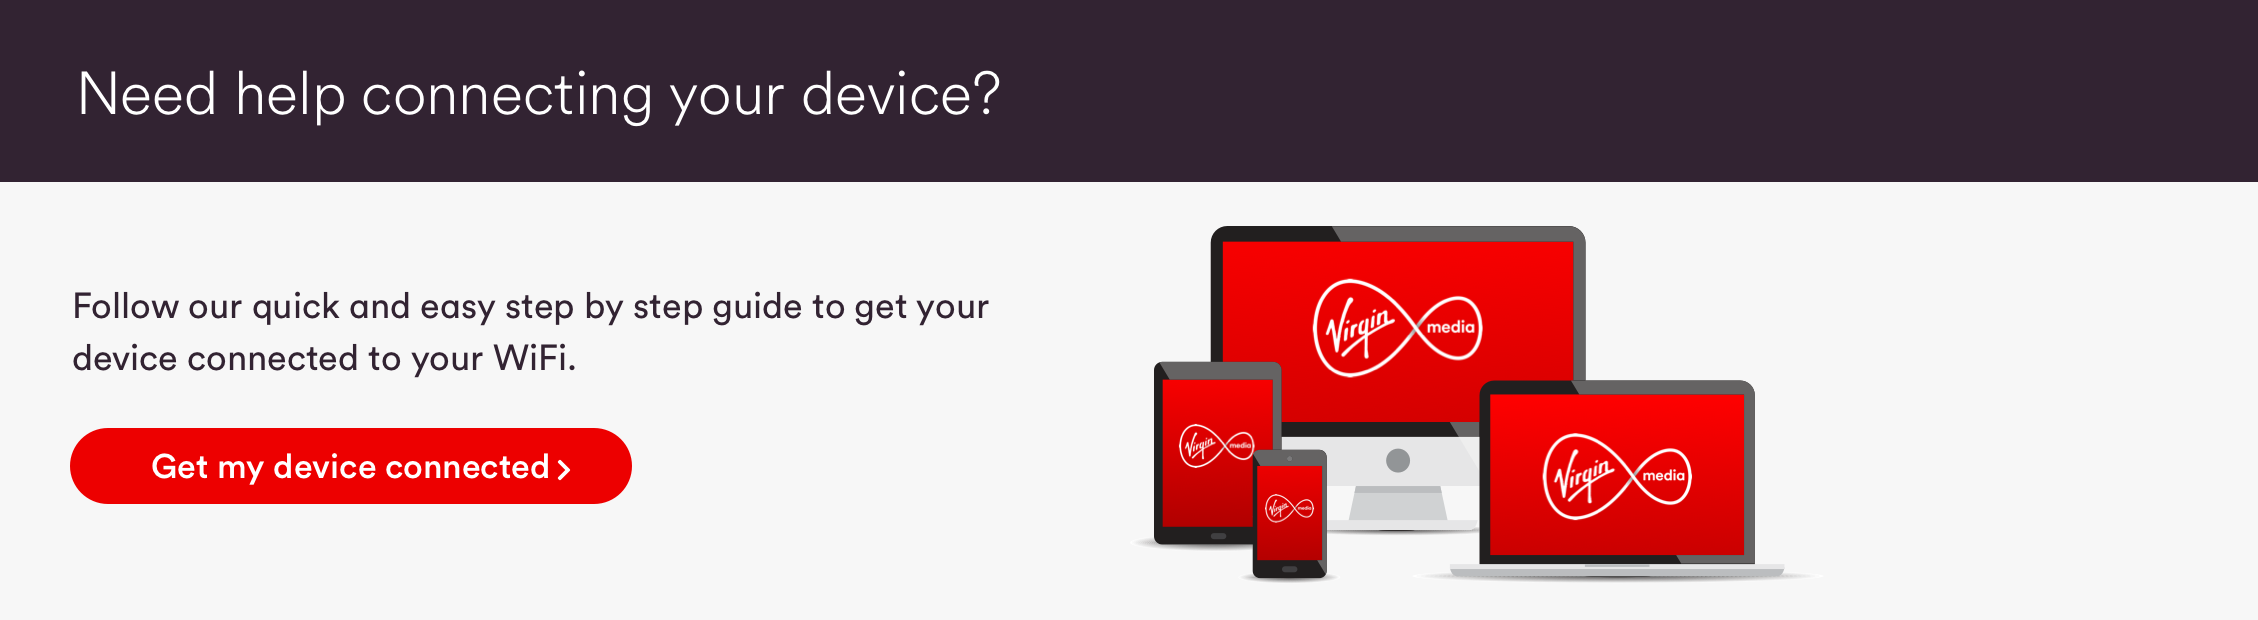 Connect your Android Device to Broadband | Virgin Media